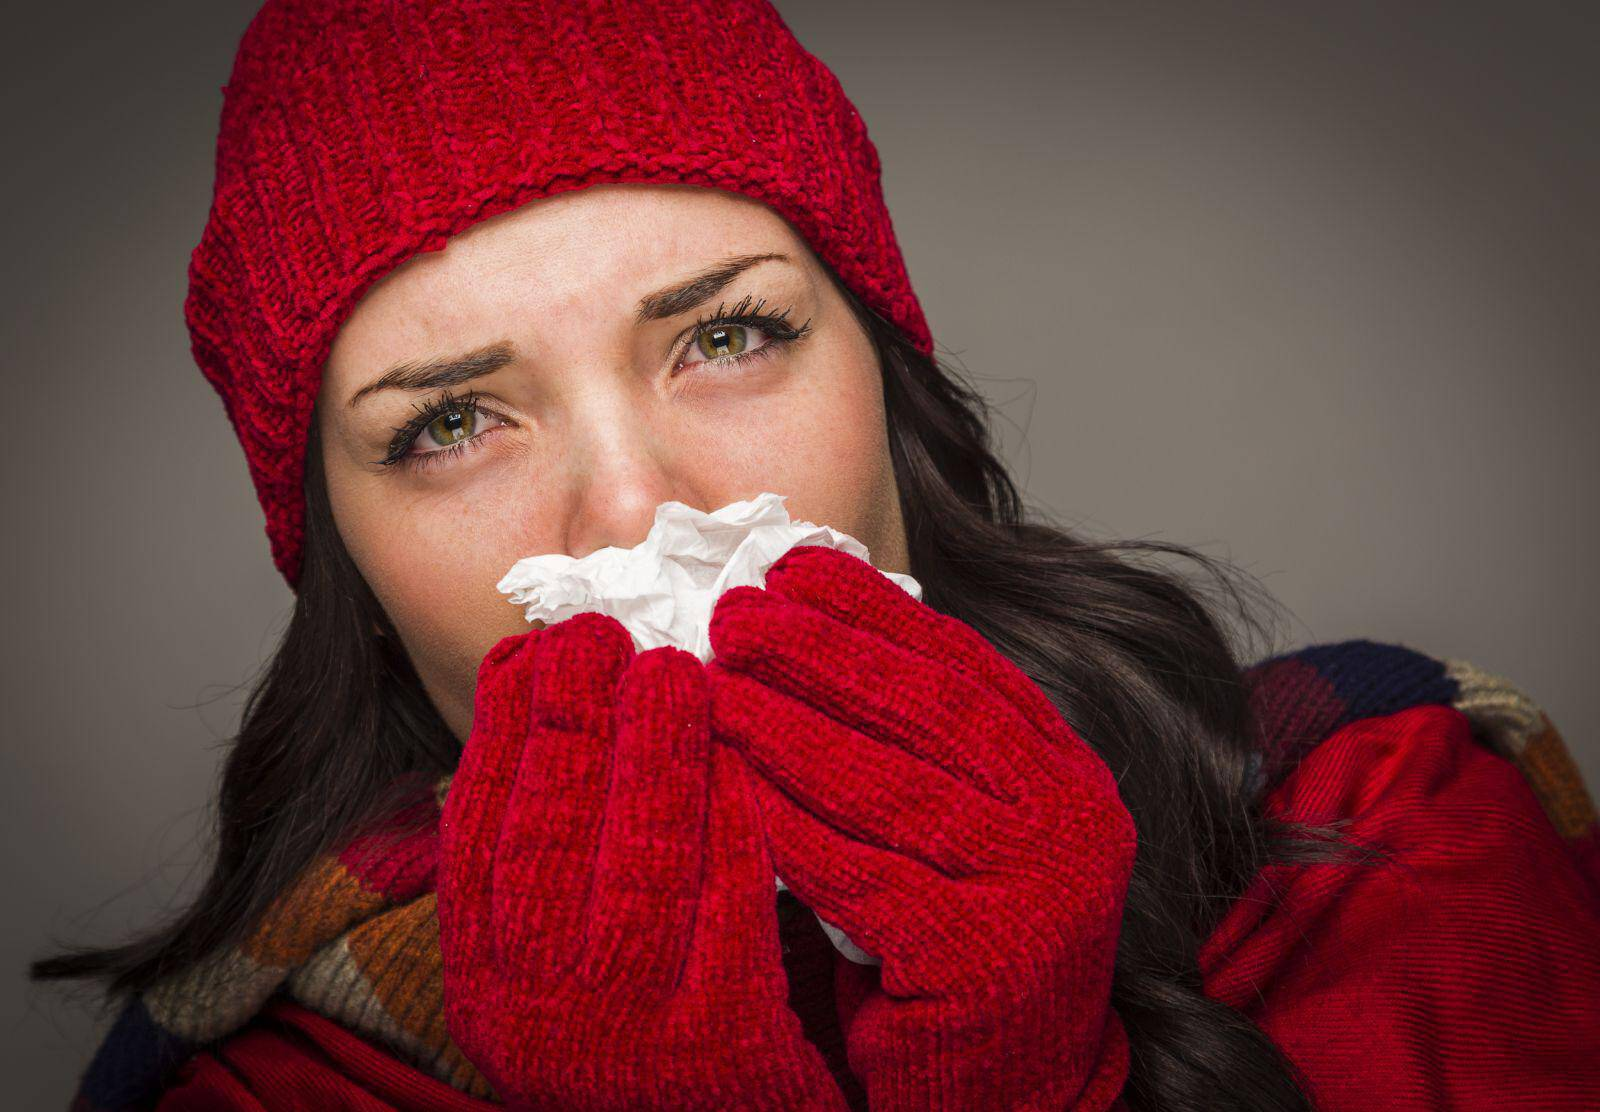 woman-with-cold-blowing-nose